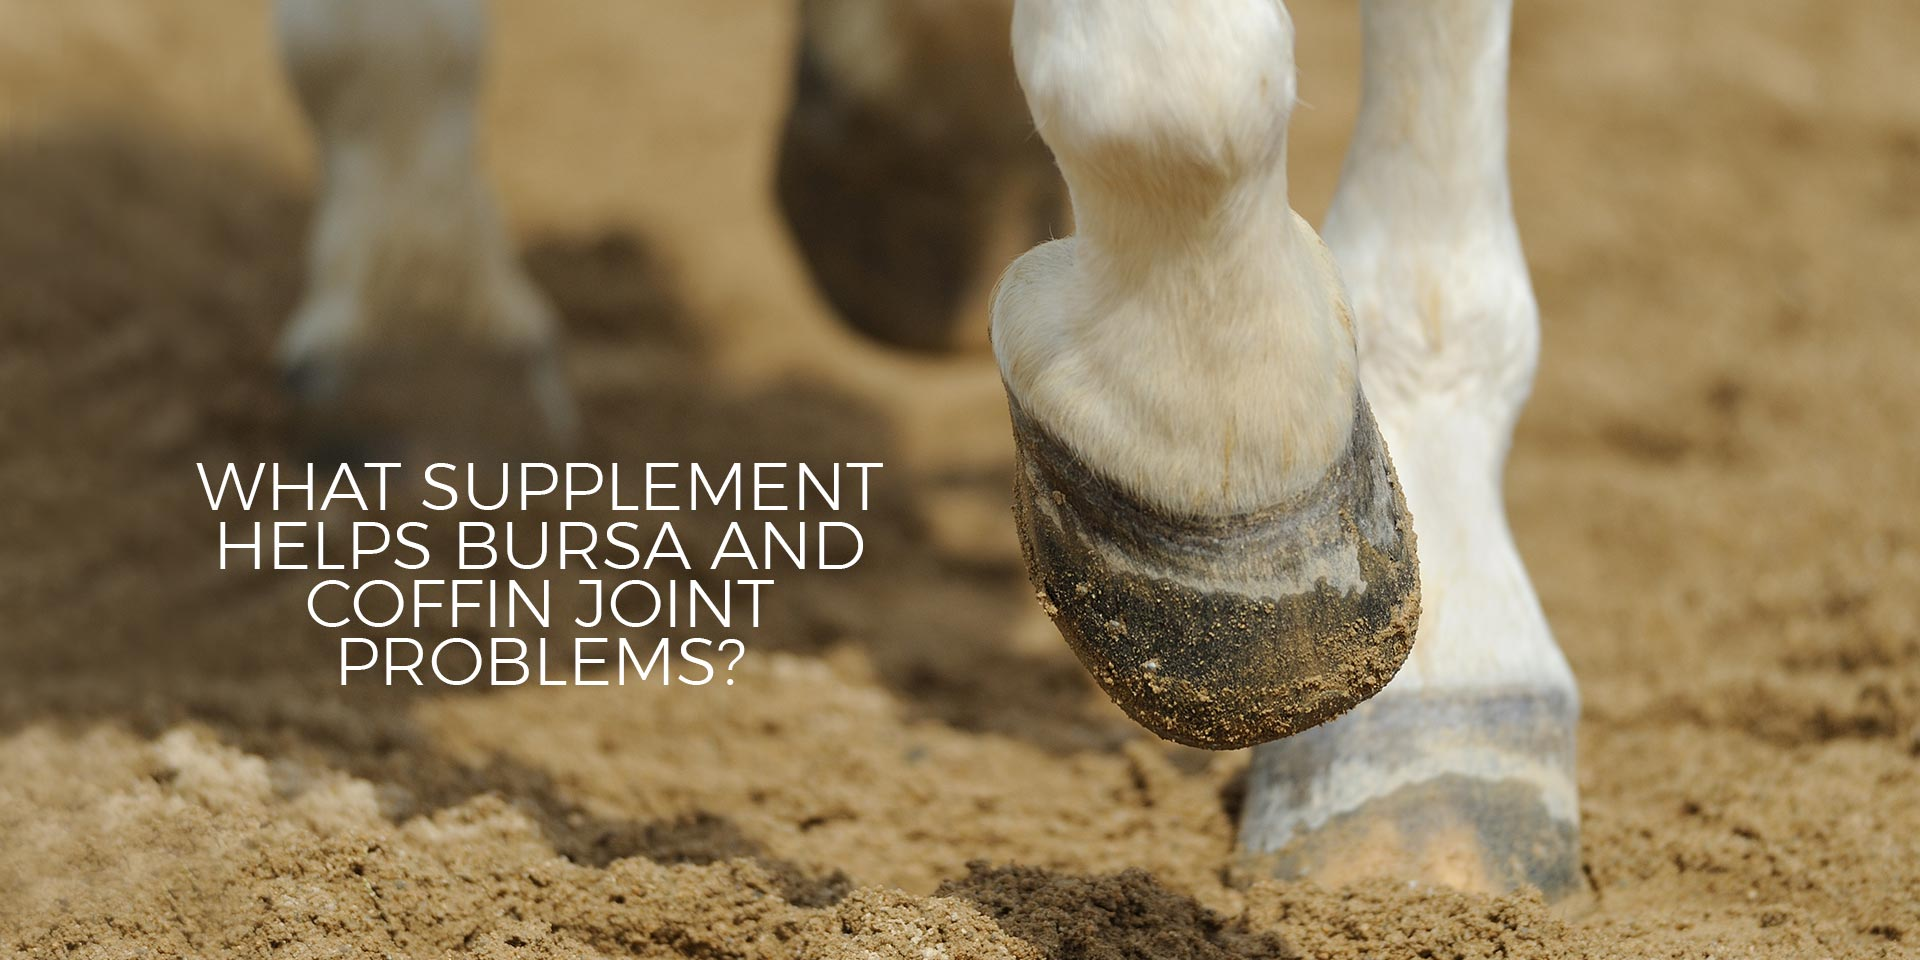 What Supplement Helps Bursa and Coffin Joint Problems?